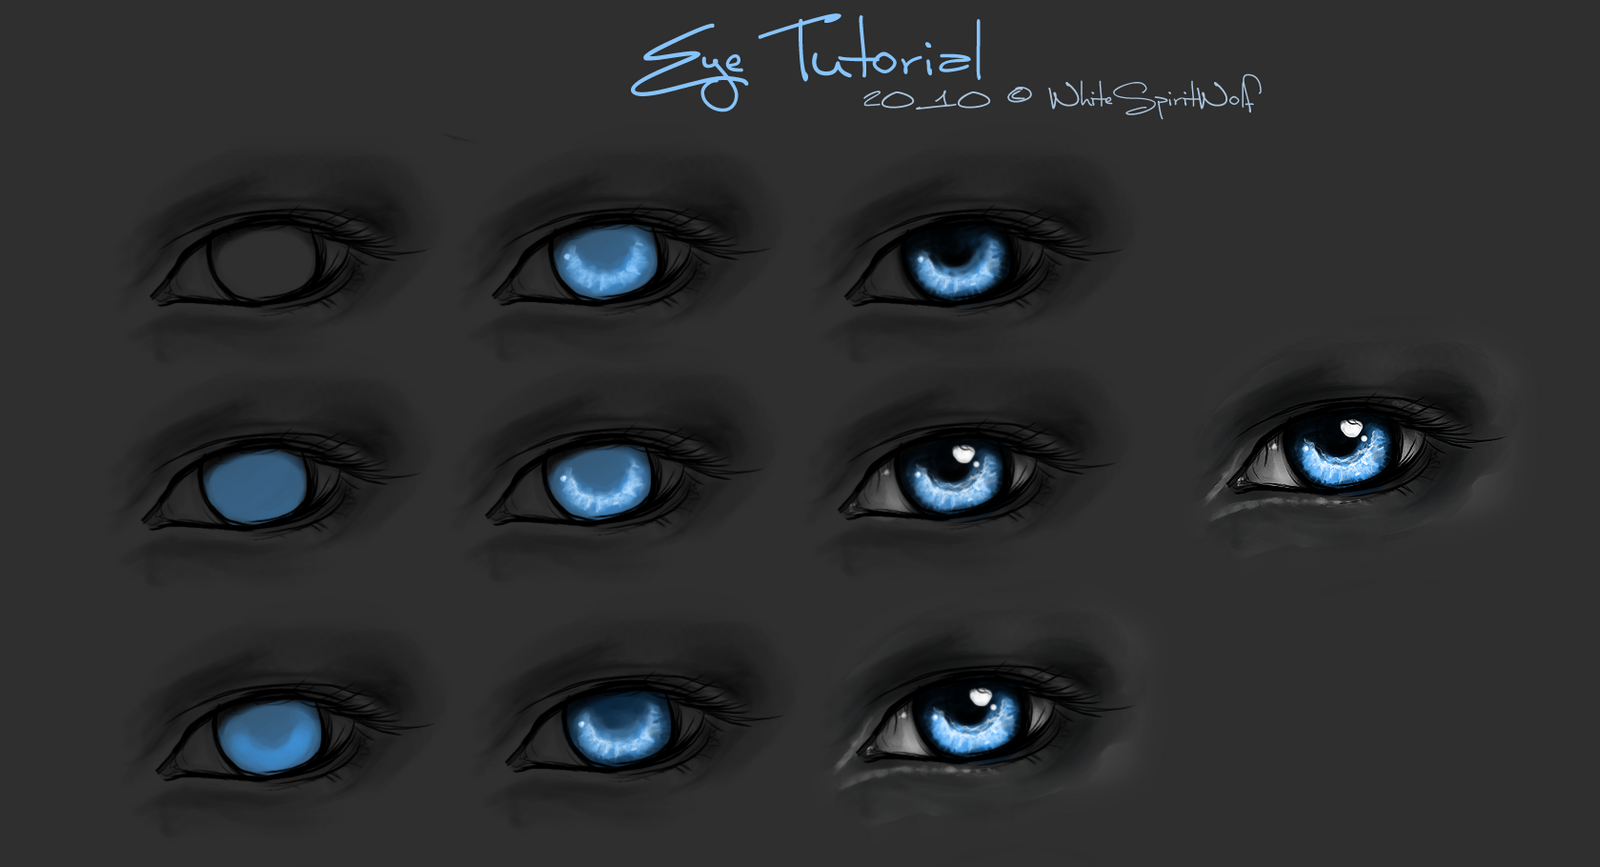 Whites eye tutorial by whitespiritwolf on deviantart eye tutorial by whitespiritwolf ccuart Image collections